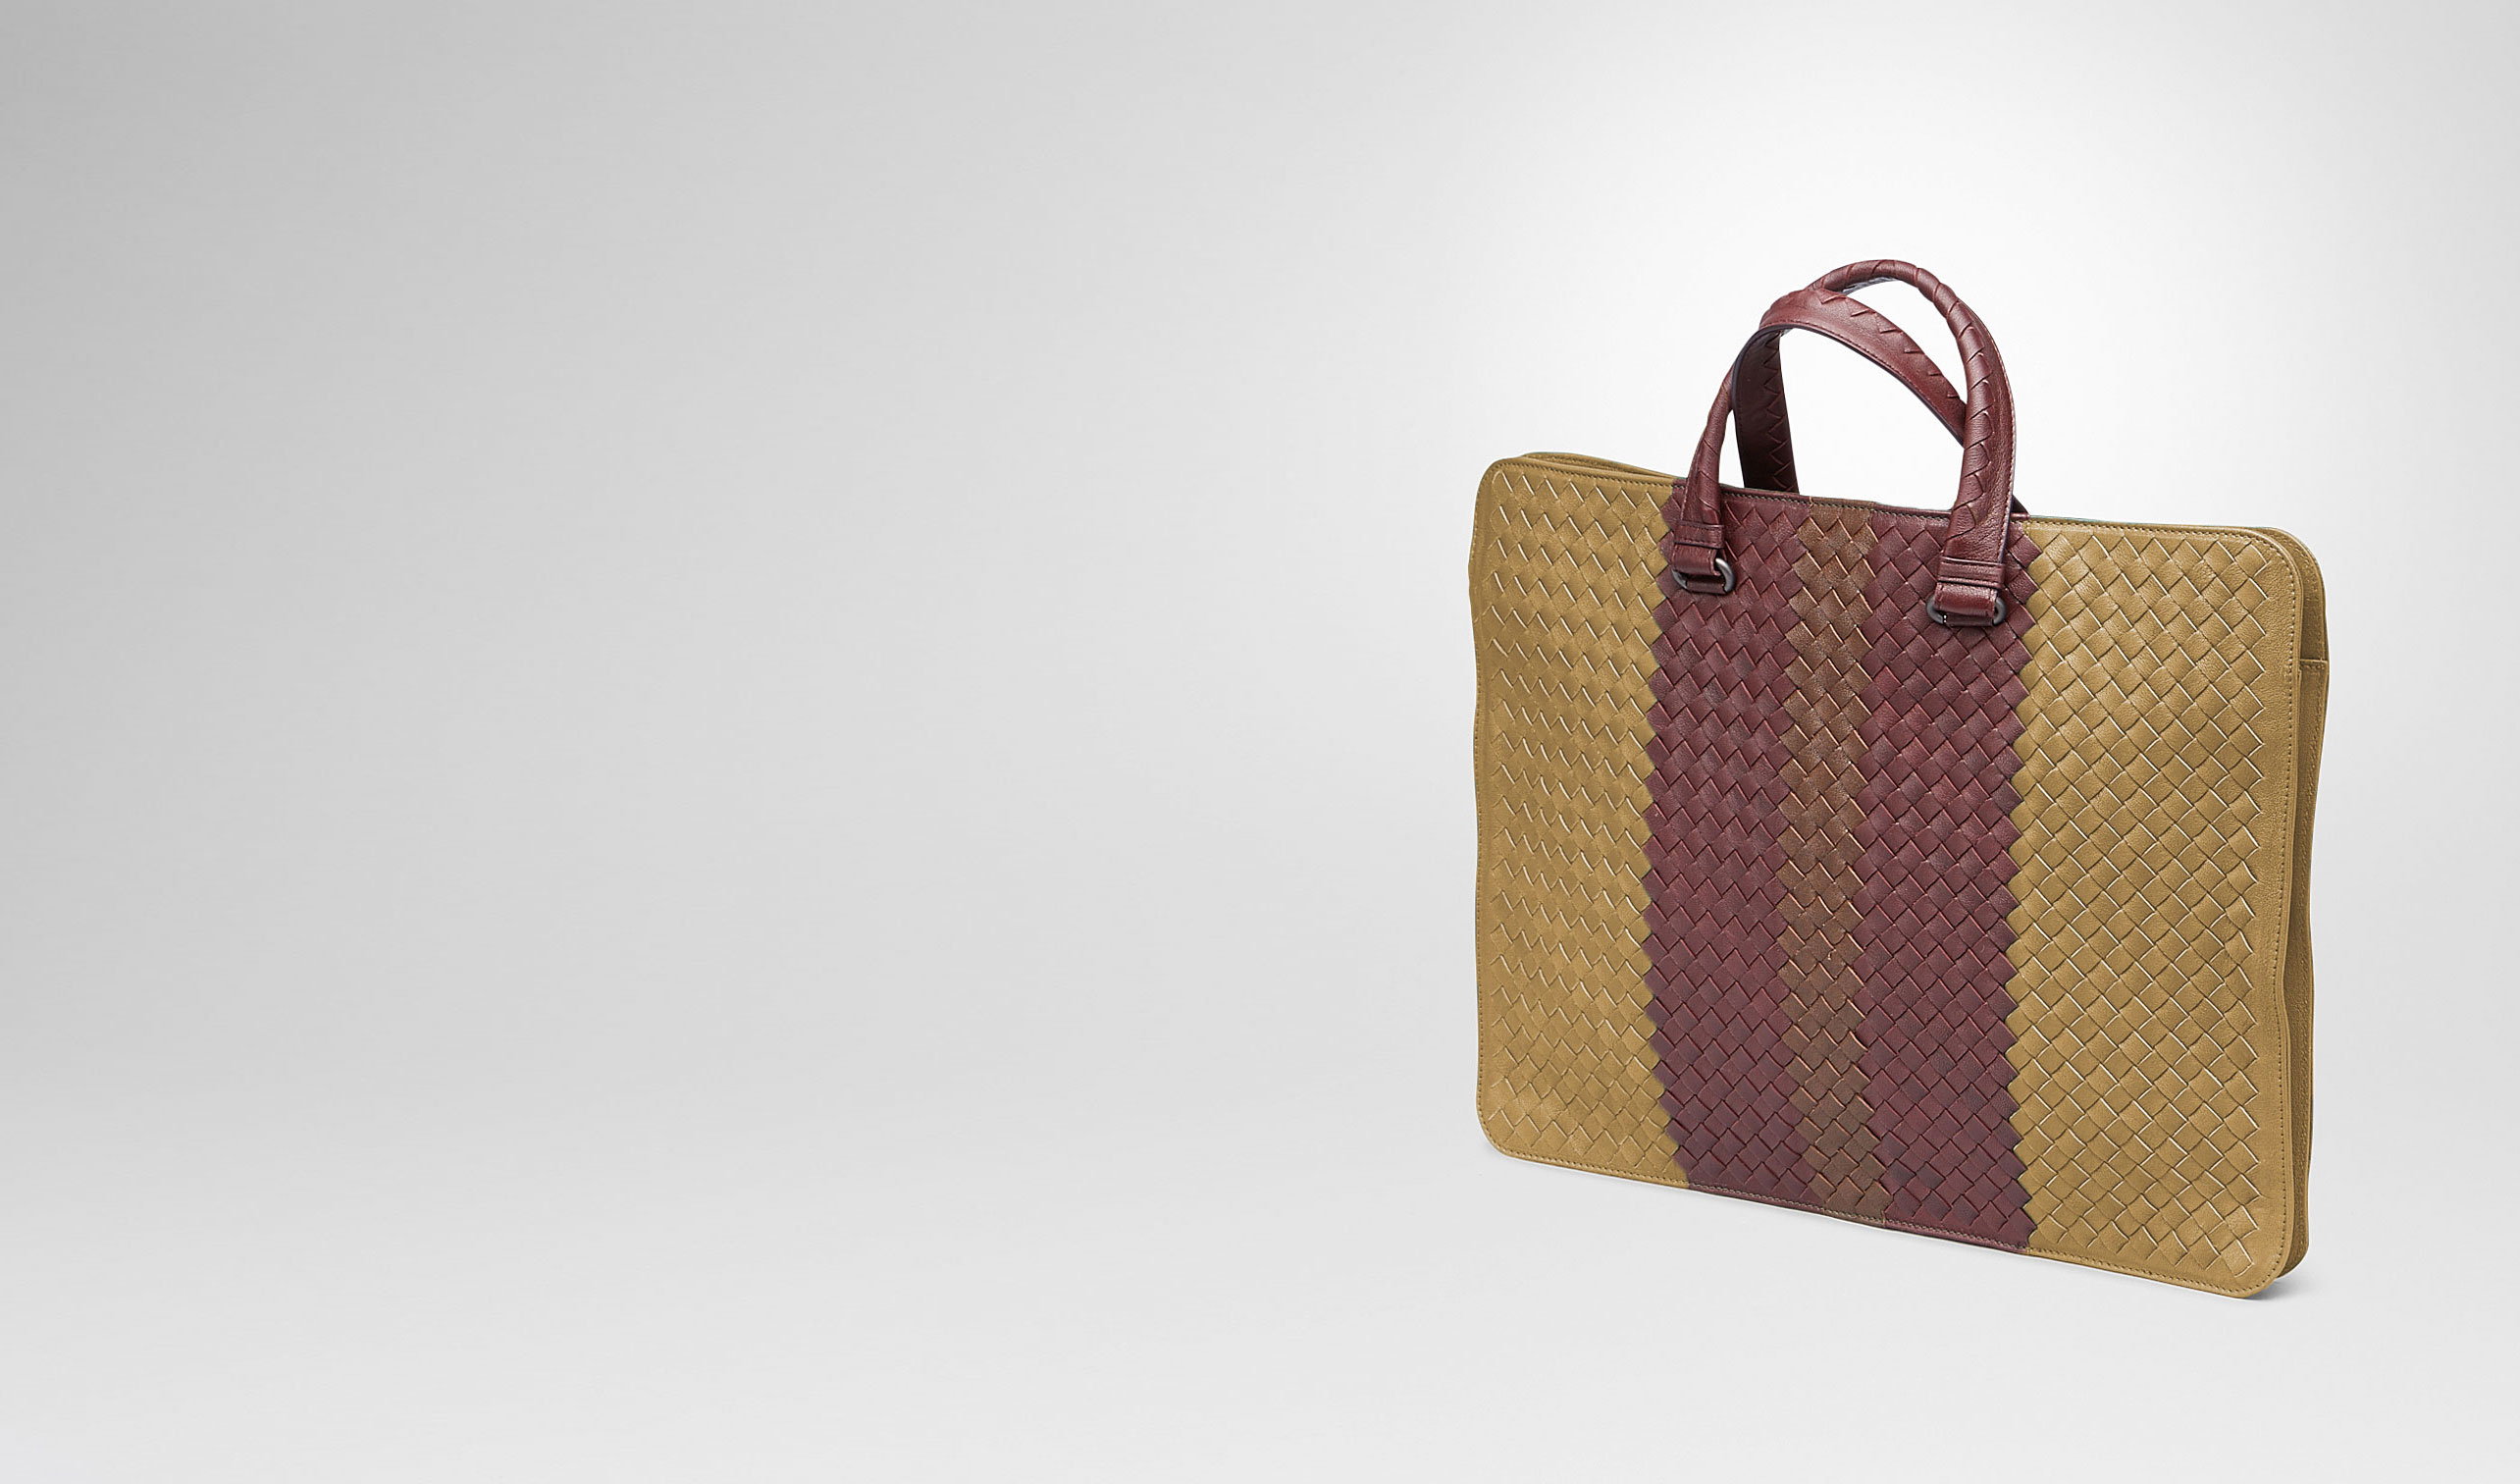 BOTTEGA VENETA Business Tasche U AKTENTASCHE AUS CLUB FUMÉ INTRECCIATO NEW BRONZE, AUBERGINE UND EDOARDO pl